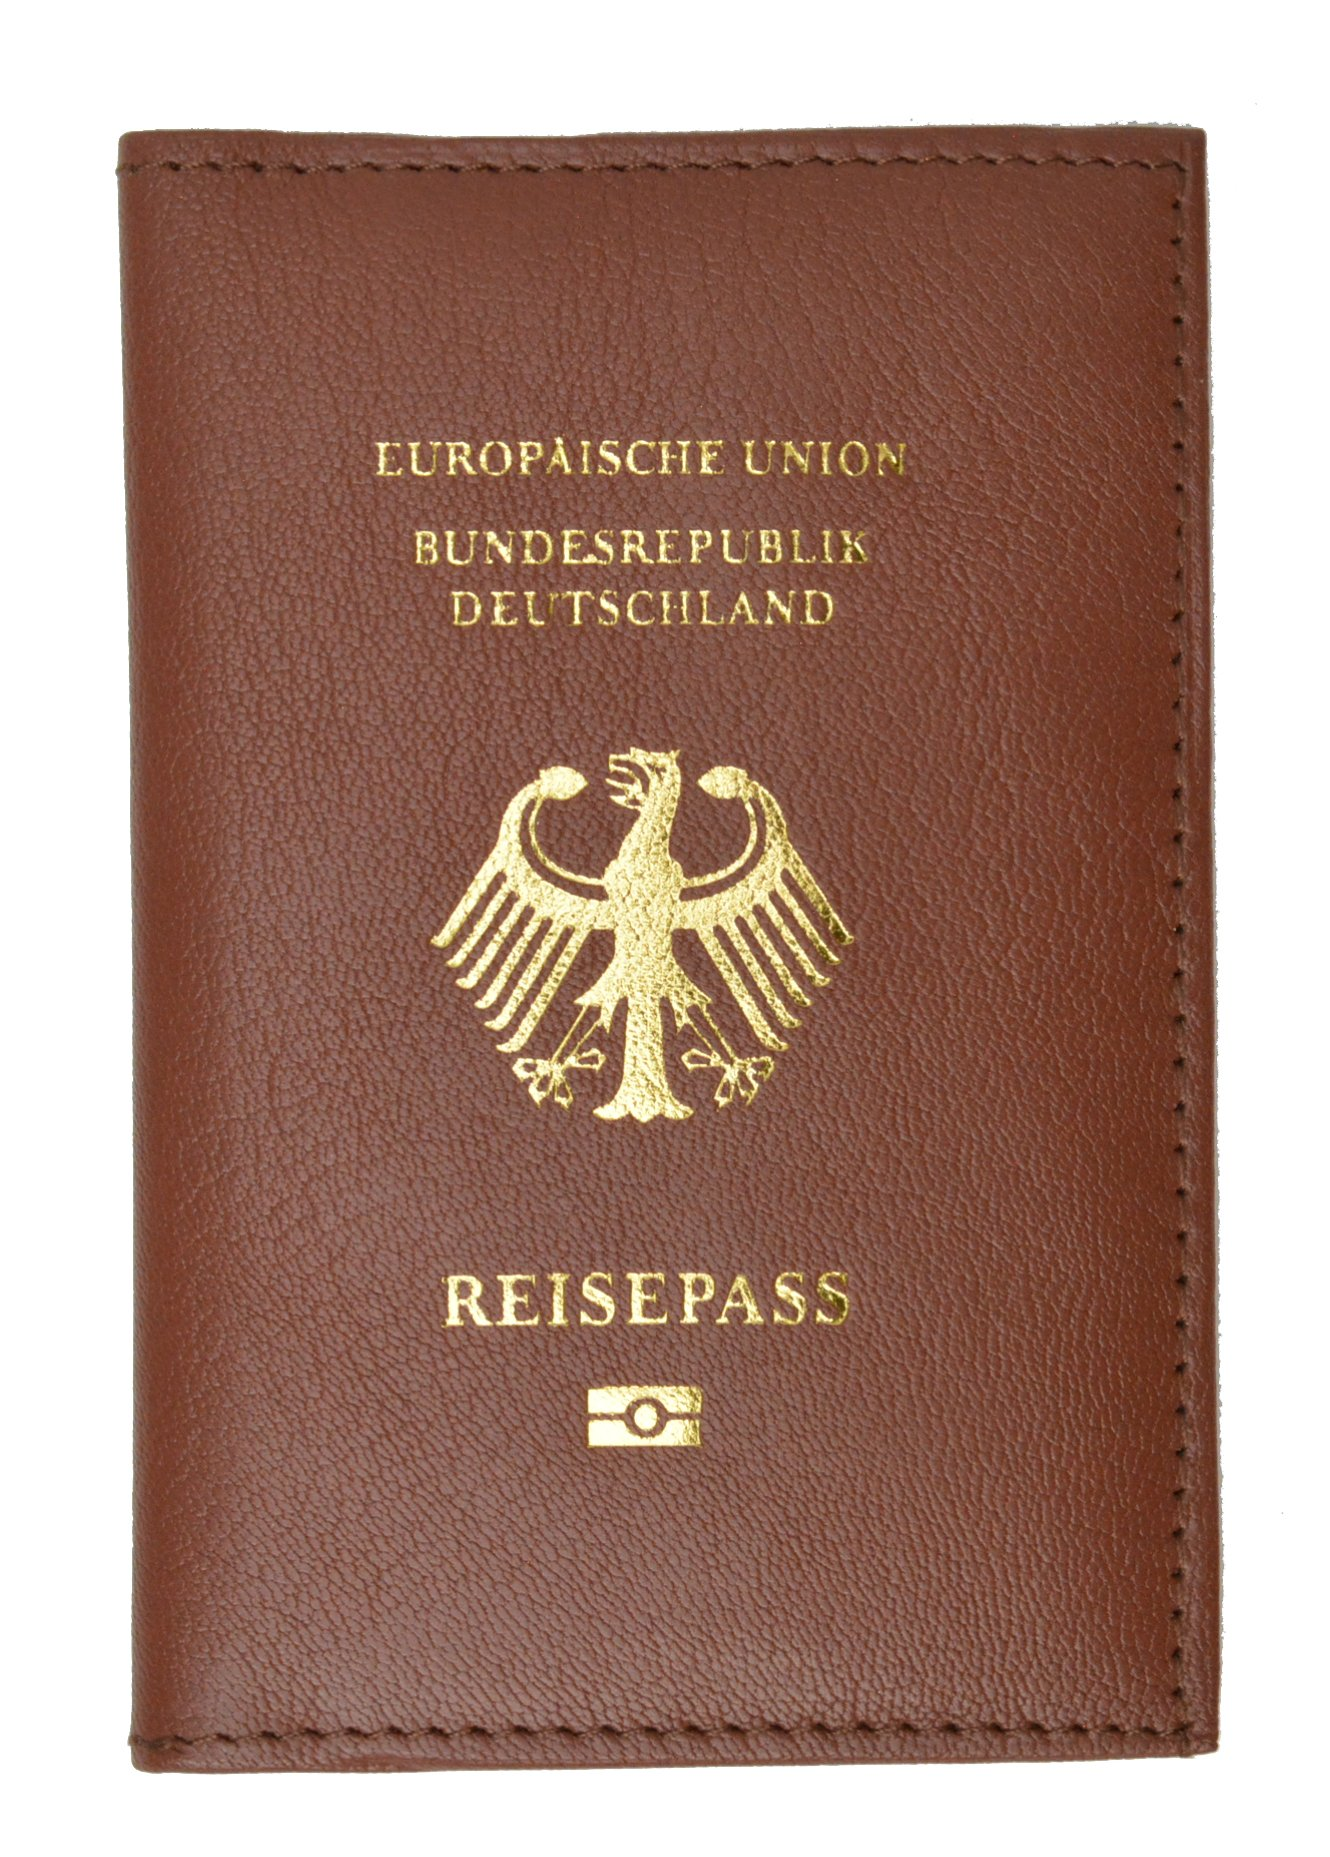 Genuine Leather Passport Wallet, Cover, Holder with German Emblem for International Travel (Burgundy)